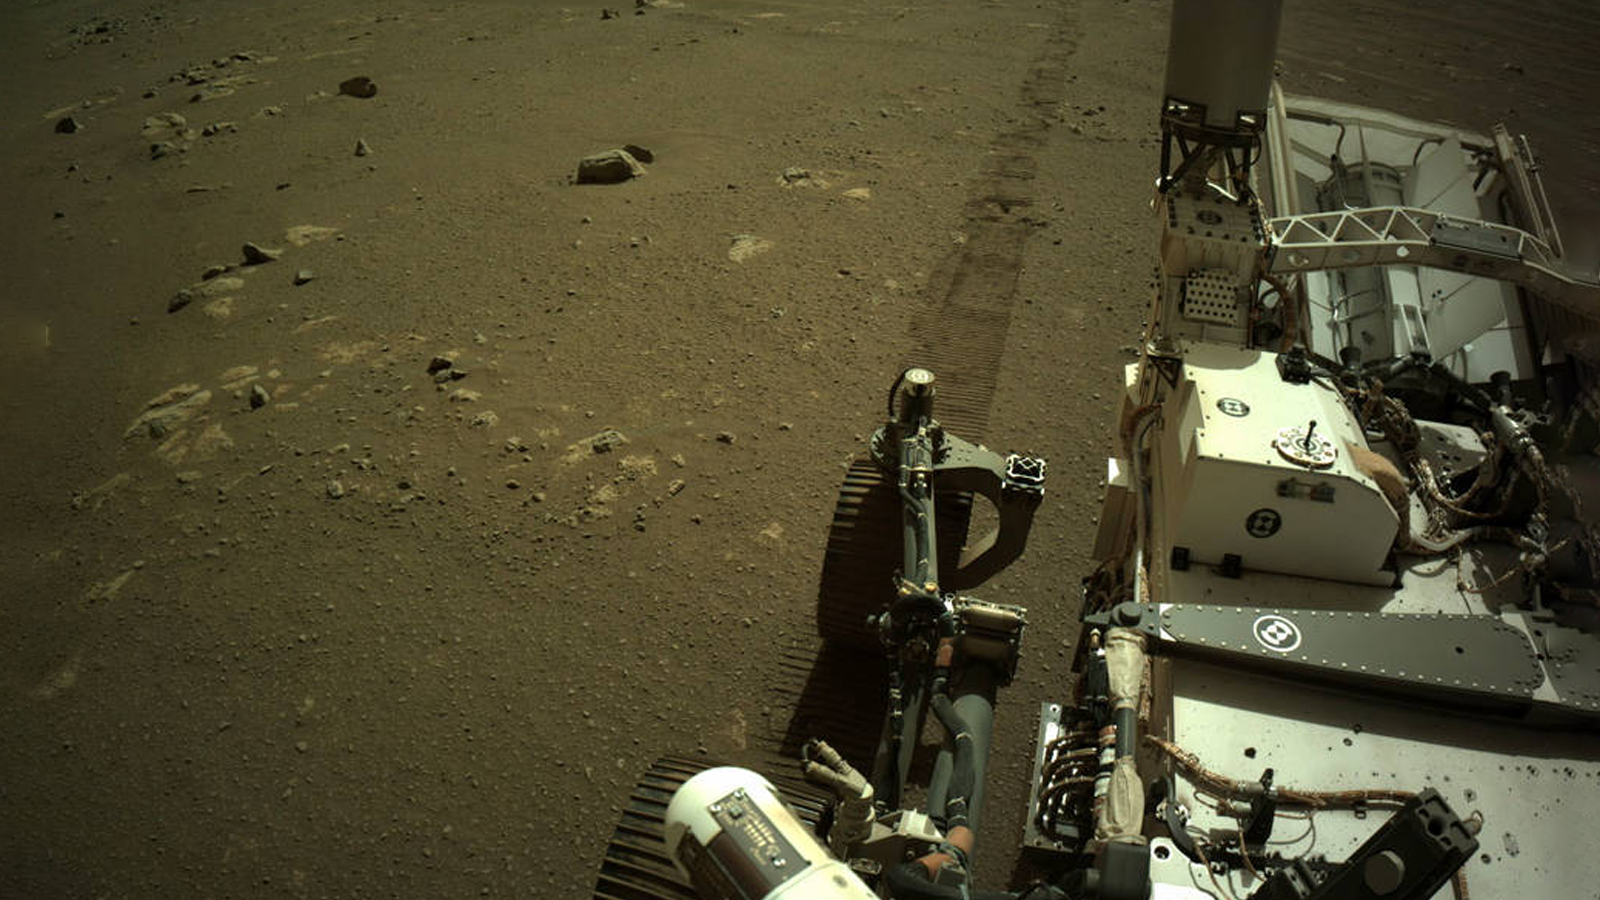 Hear the Perseverance Rover Drive Across Mars In These NASA Recordings thumbnail